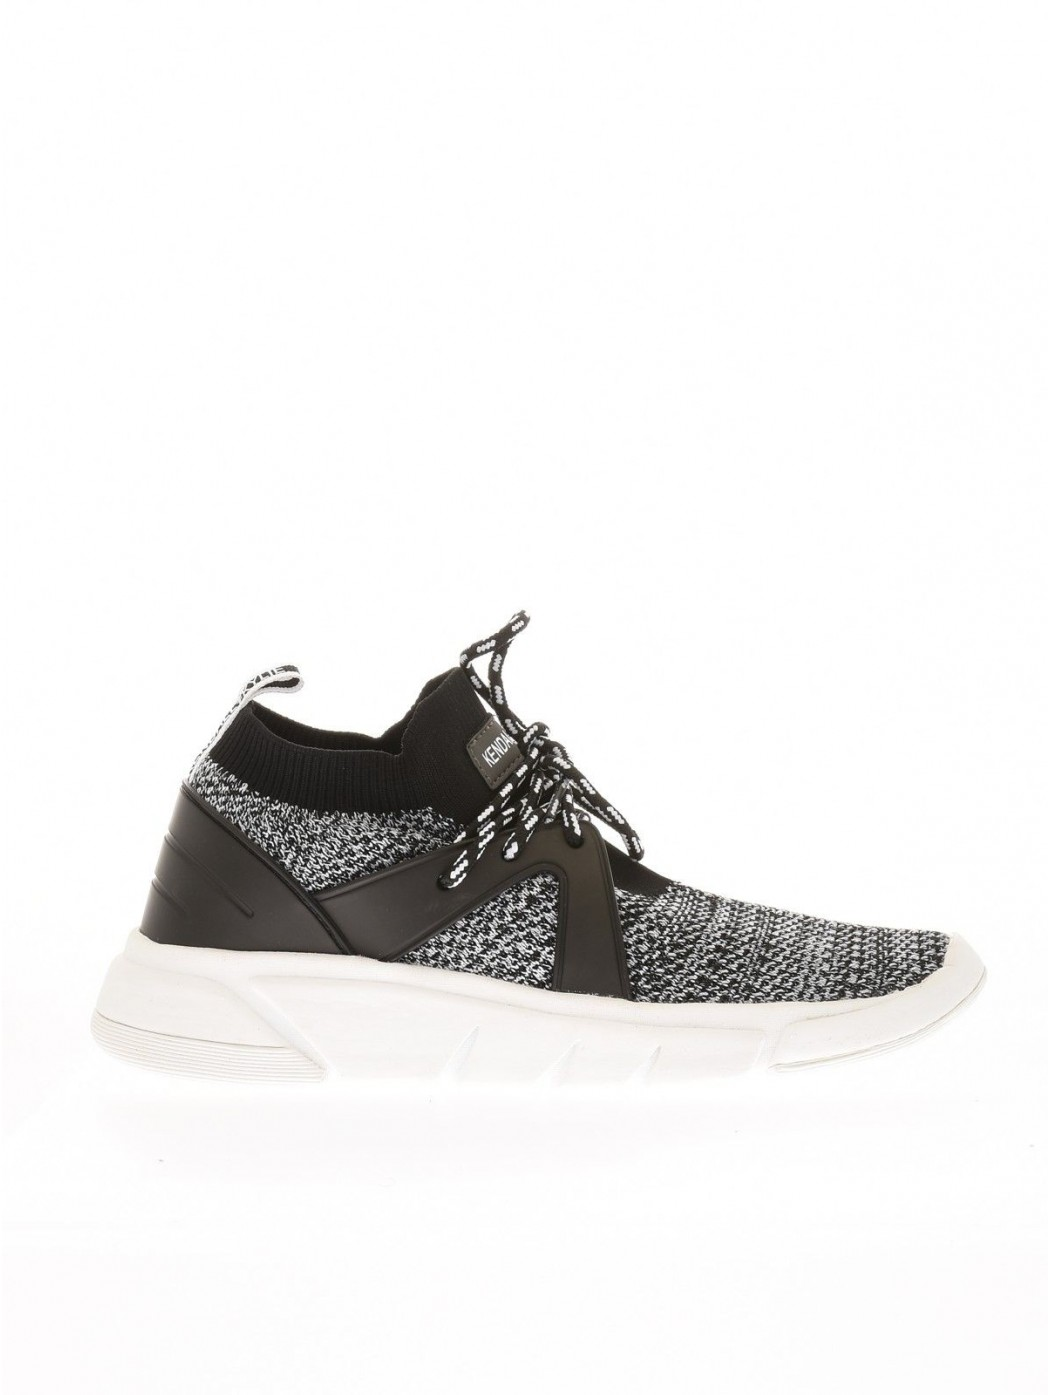 KENDALL + KYLIE KKCONQUER WHITEBLACK SNEAKERS